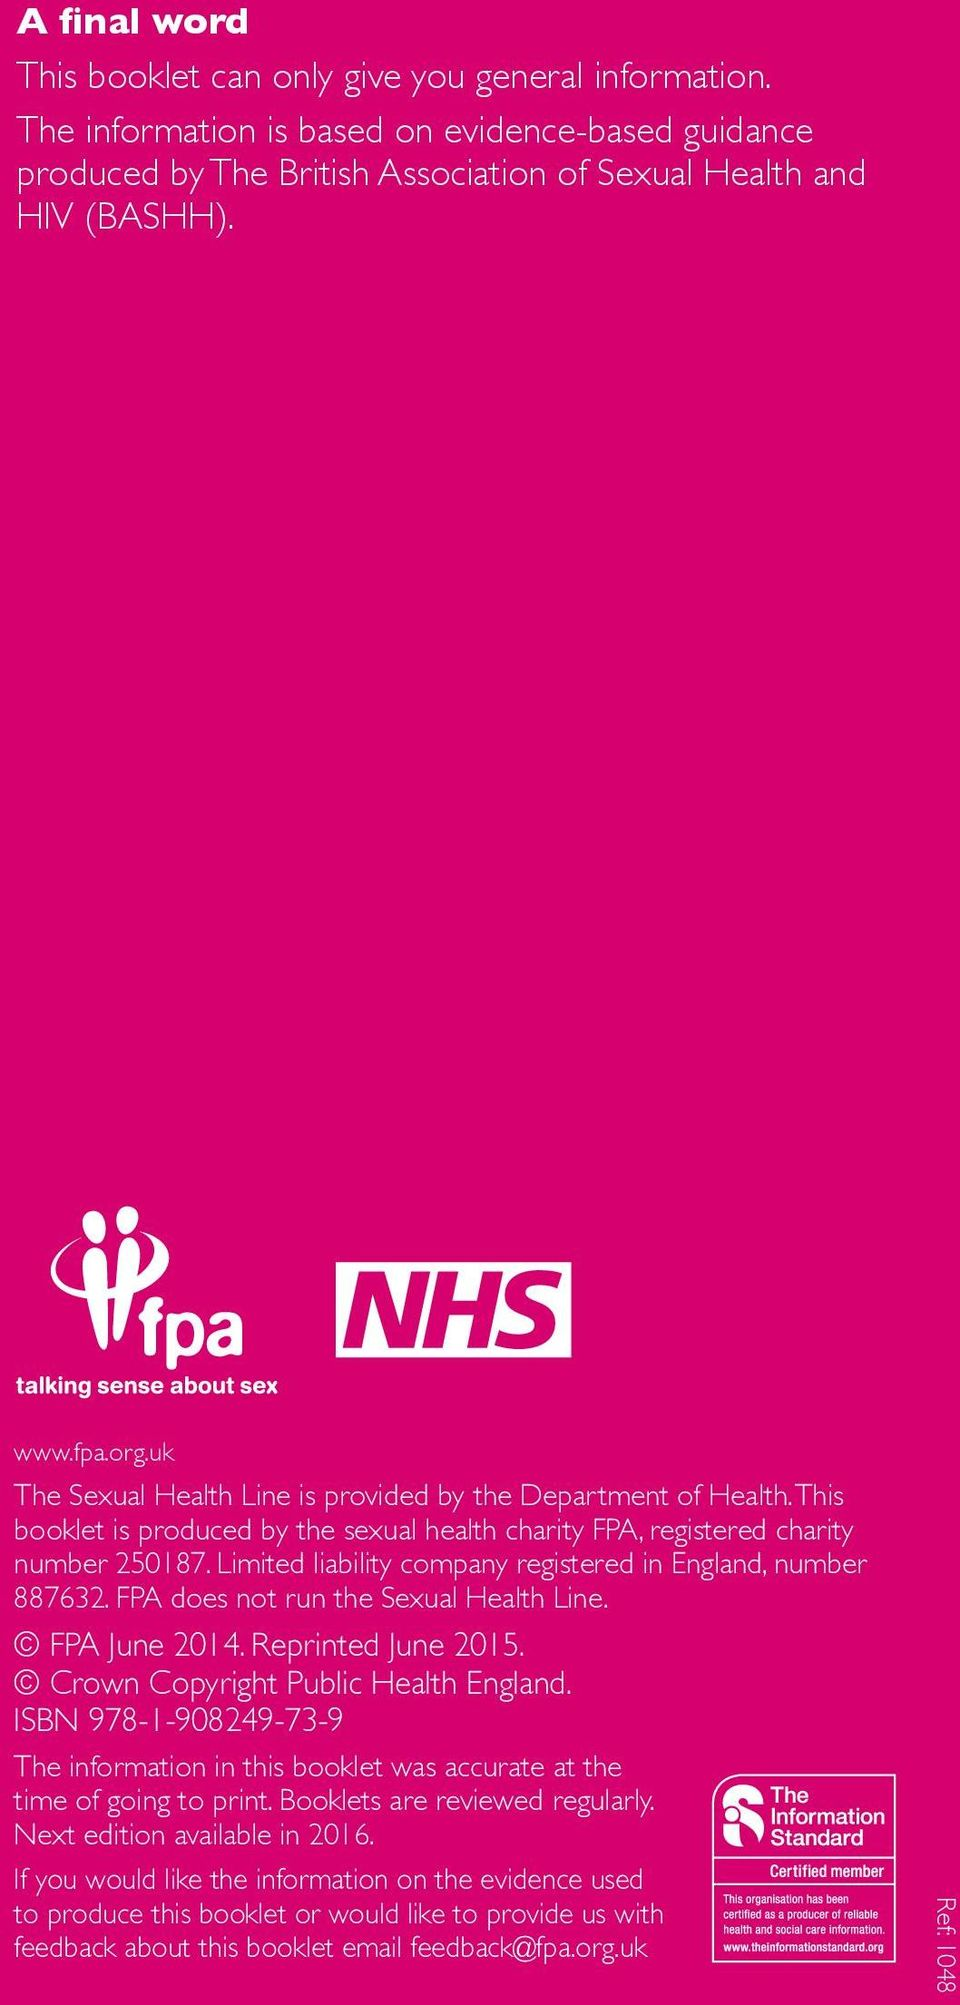 Limited liability company registered in England, number 887632. FPA does not run the Sexual Health Line. FPA June 2014. Reprinted June 2015. Crown Copyright Public Health England.